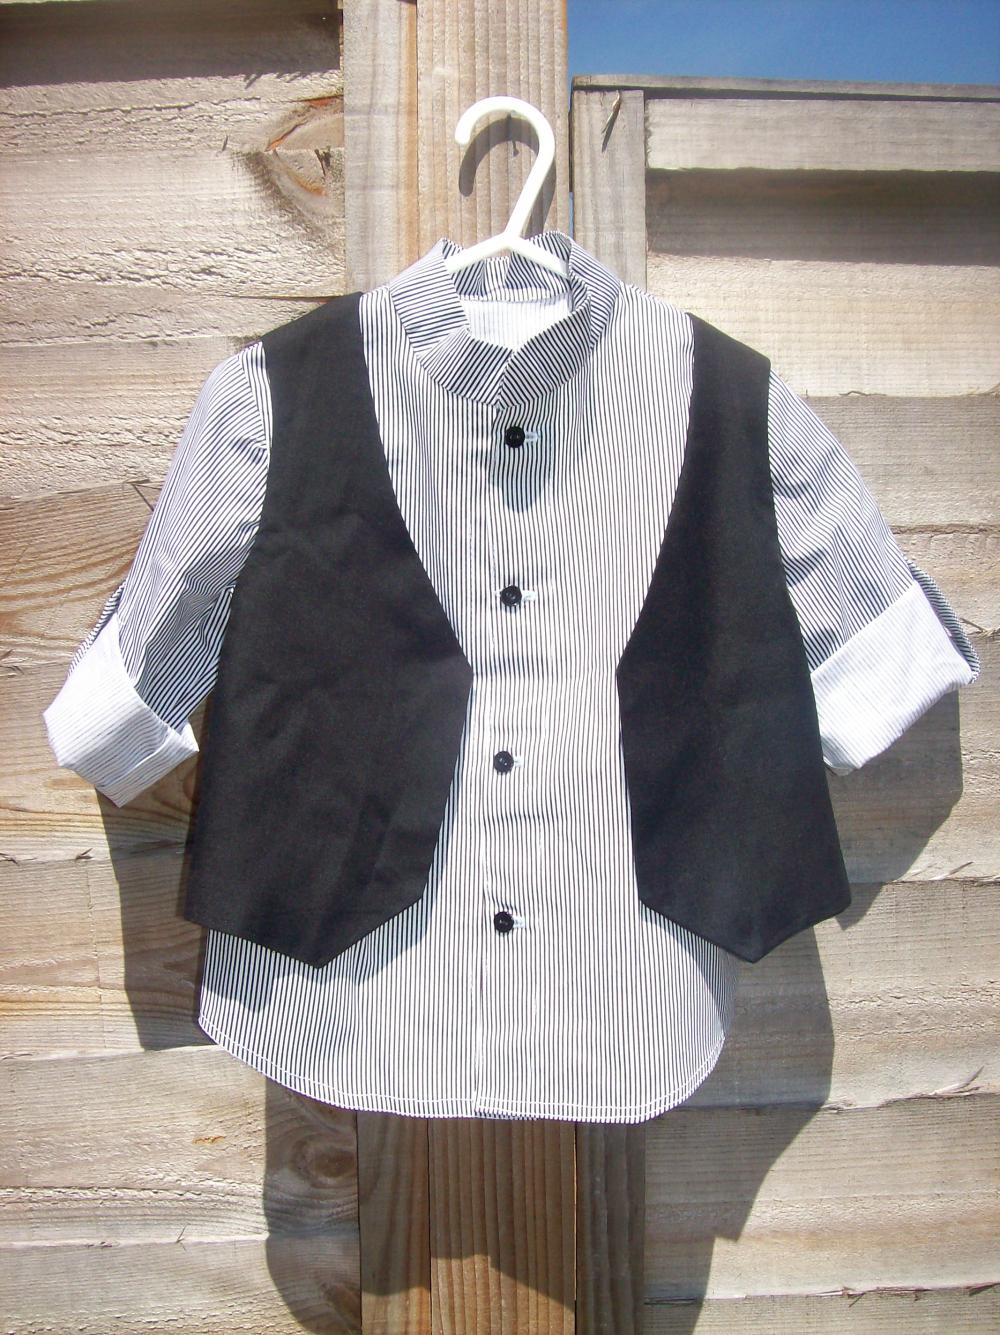 Boys black and white stripe shirt and waistcoat set.